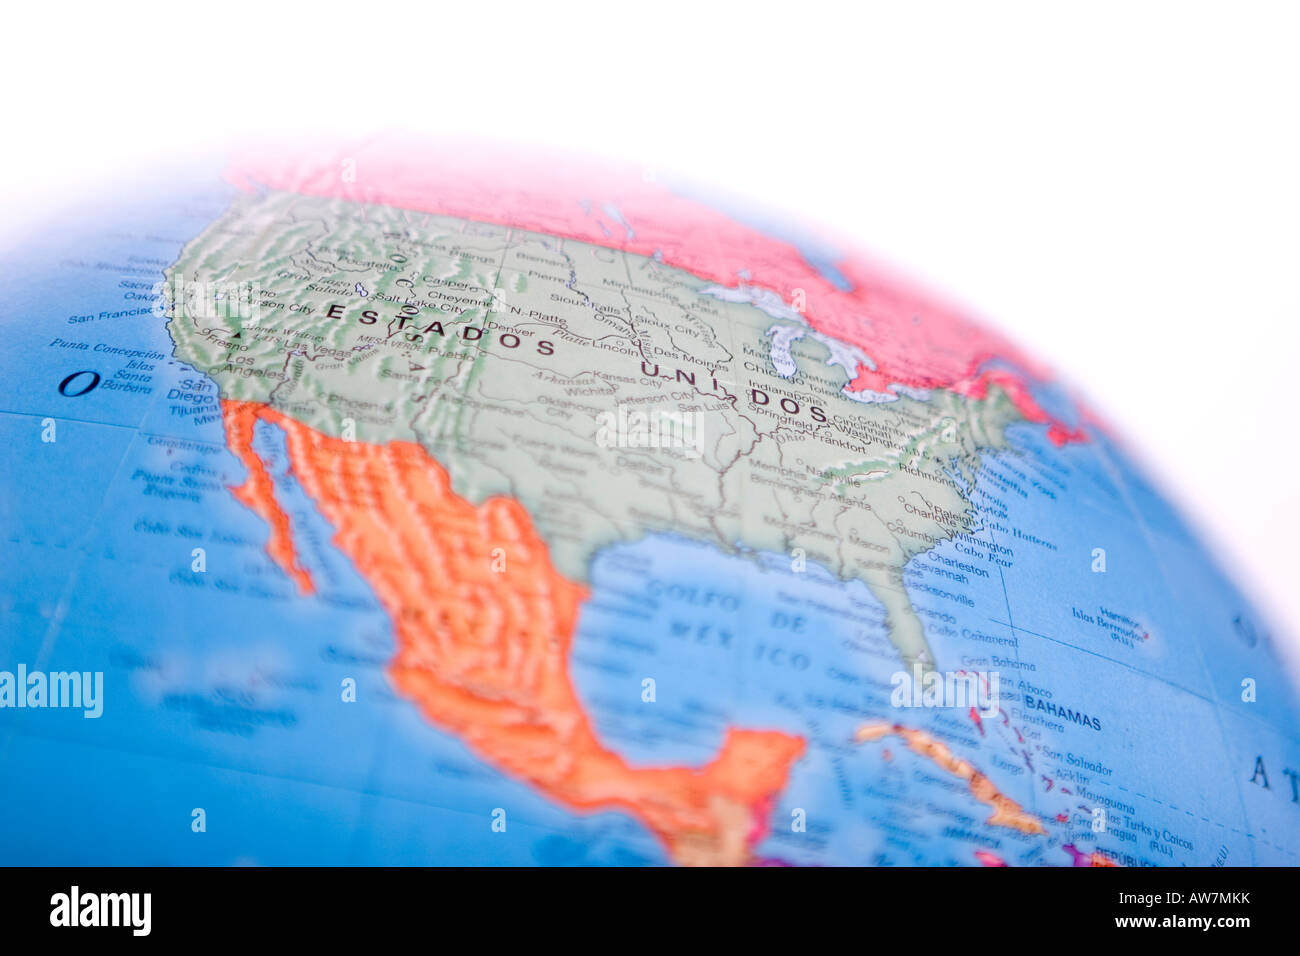 World Globe Map Of North America With Shallow Depth Of Field And - World globe map